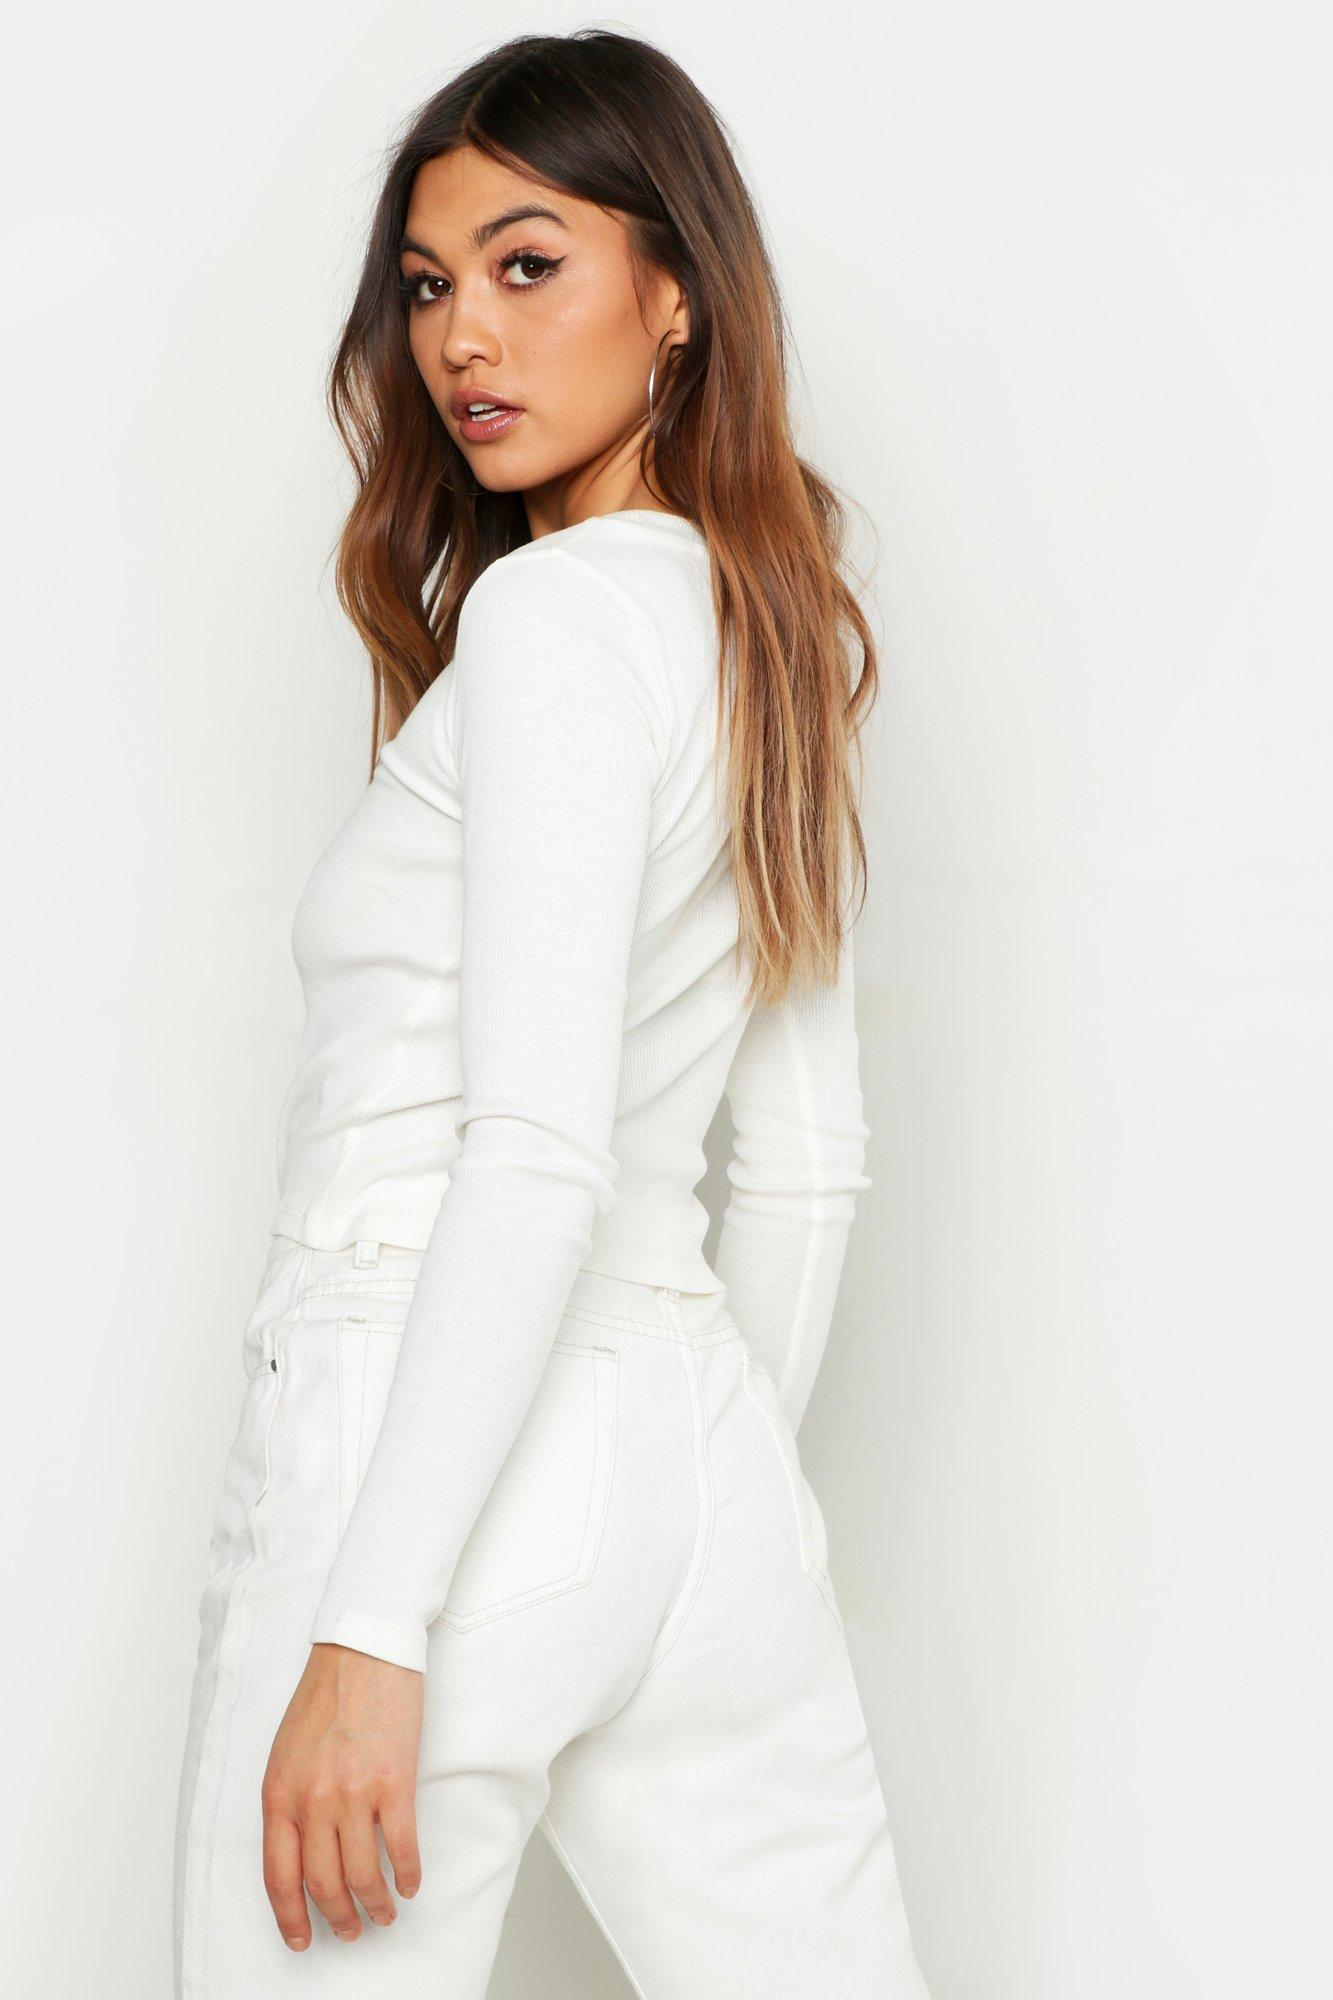 c6e2d23028427a Boohoo - White Rib The Front Long Sleeve Top - Lyst. View fullscreen